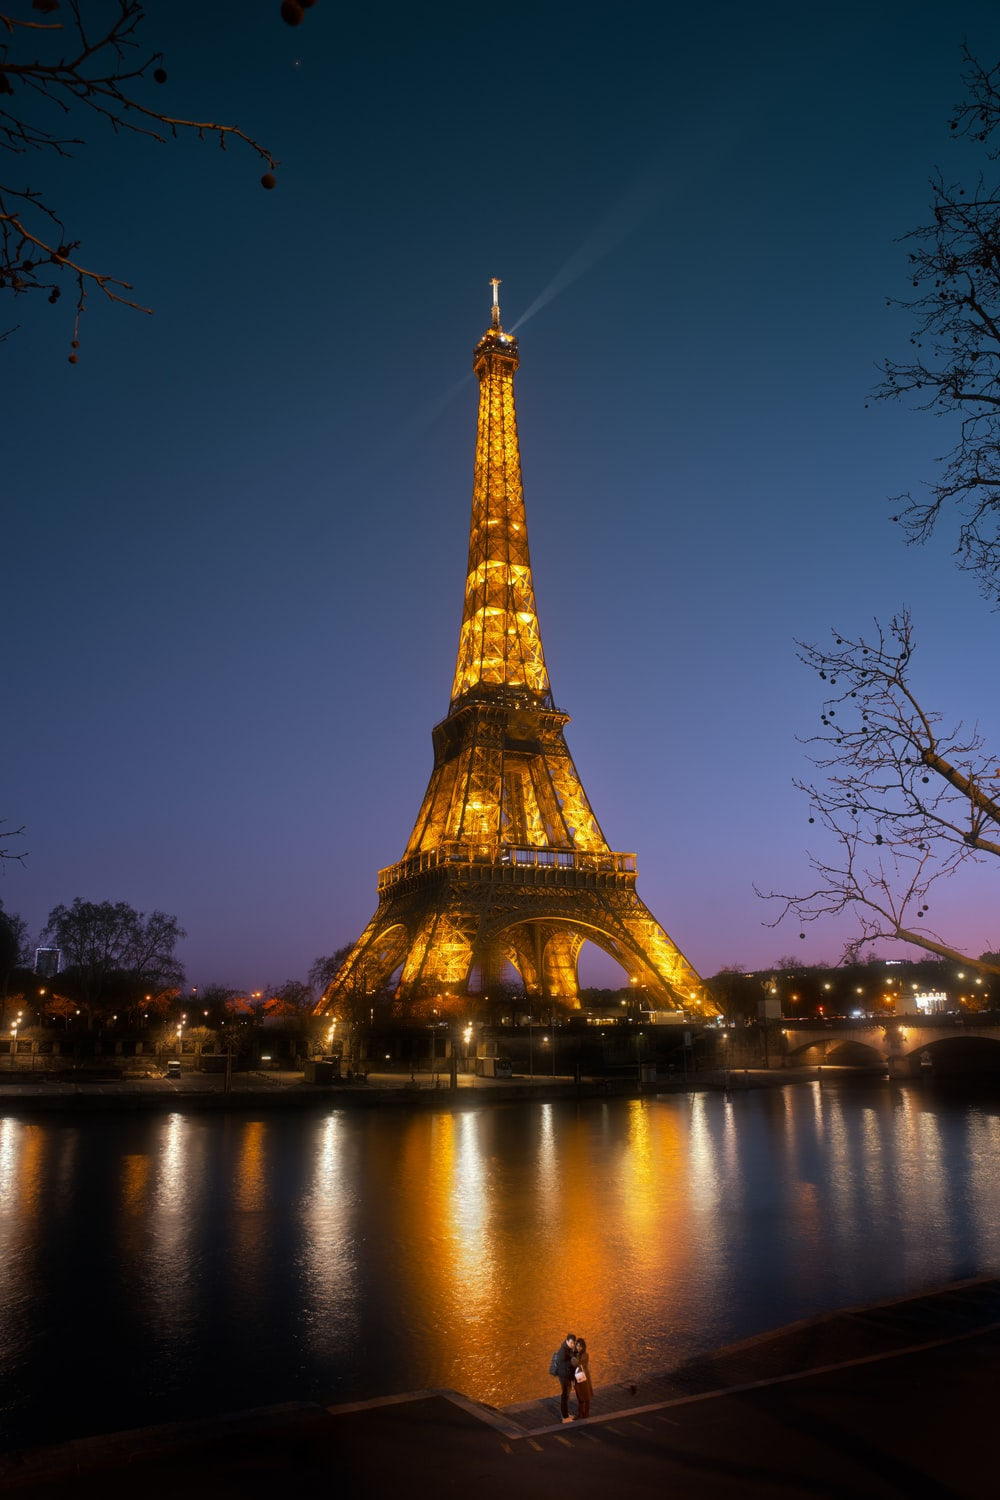 eiffel tower near body of water during night time